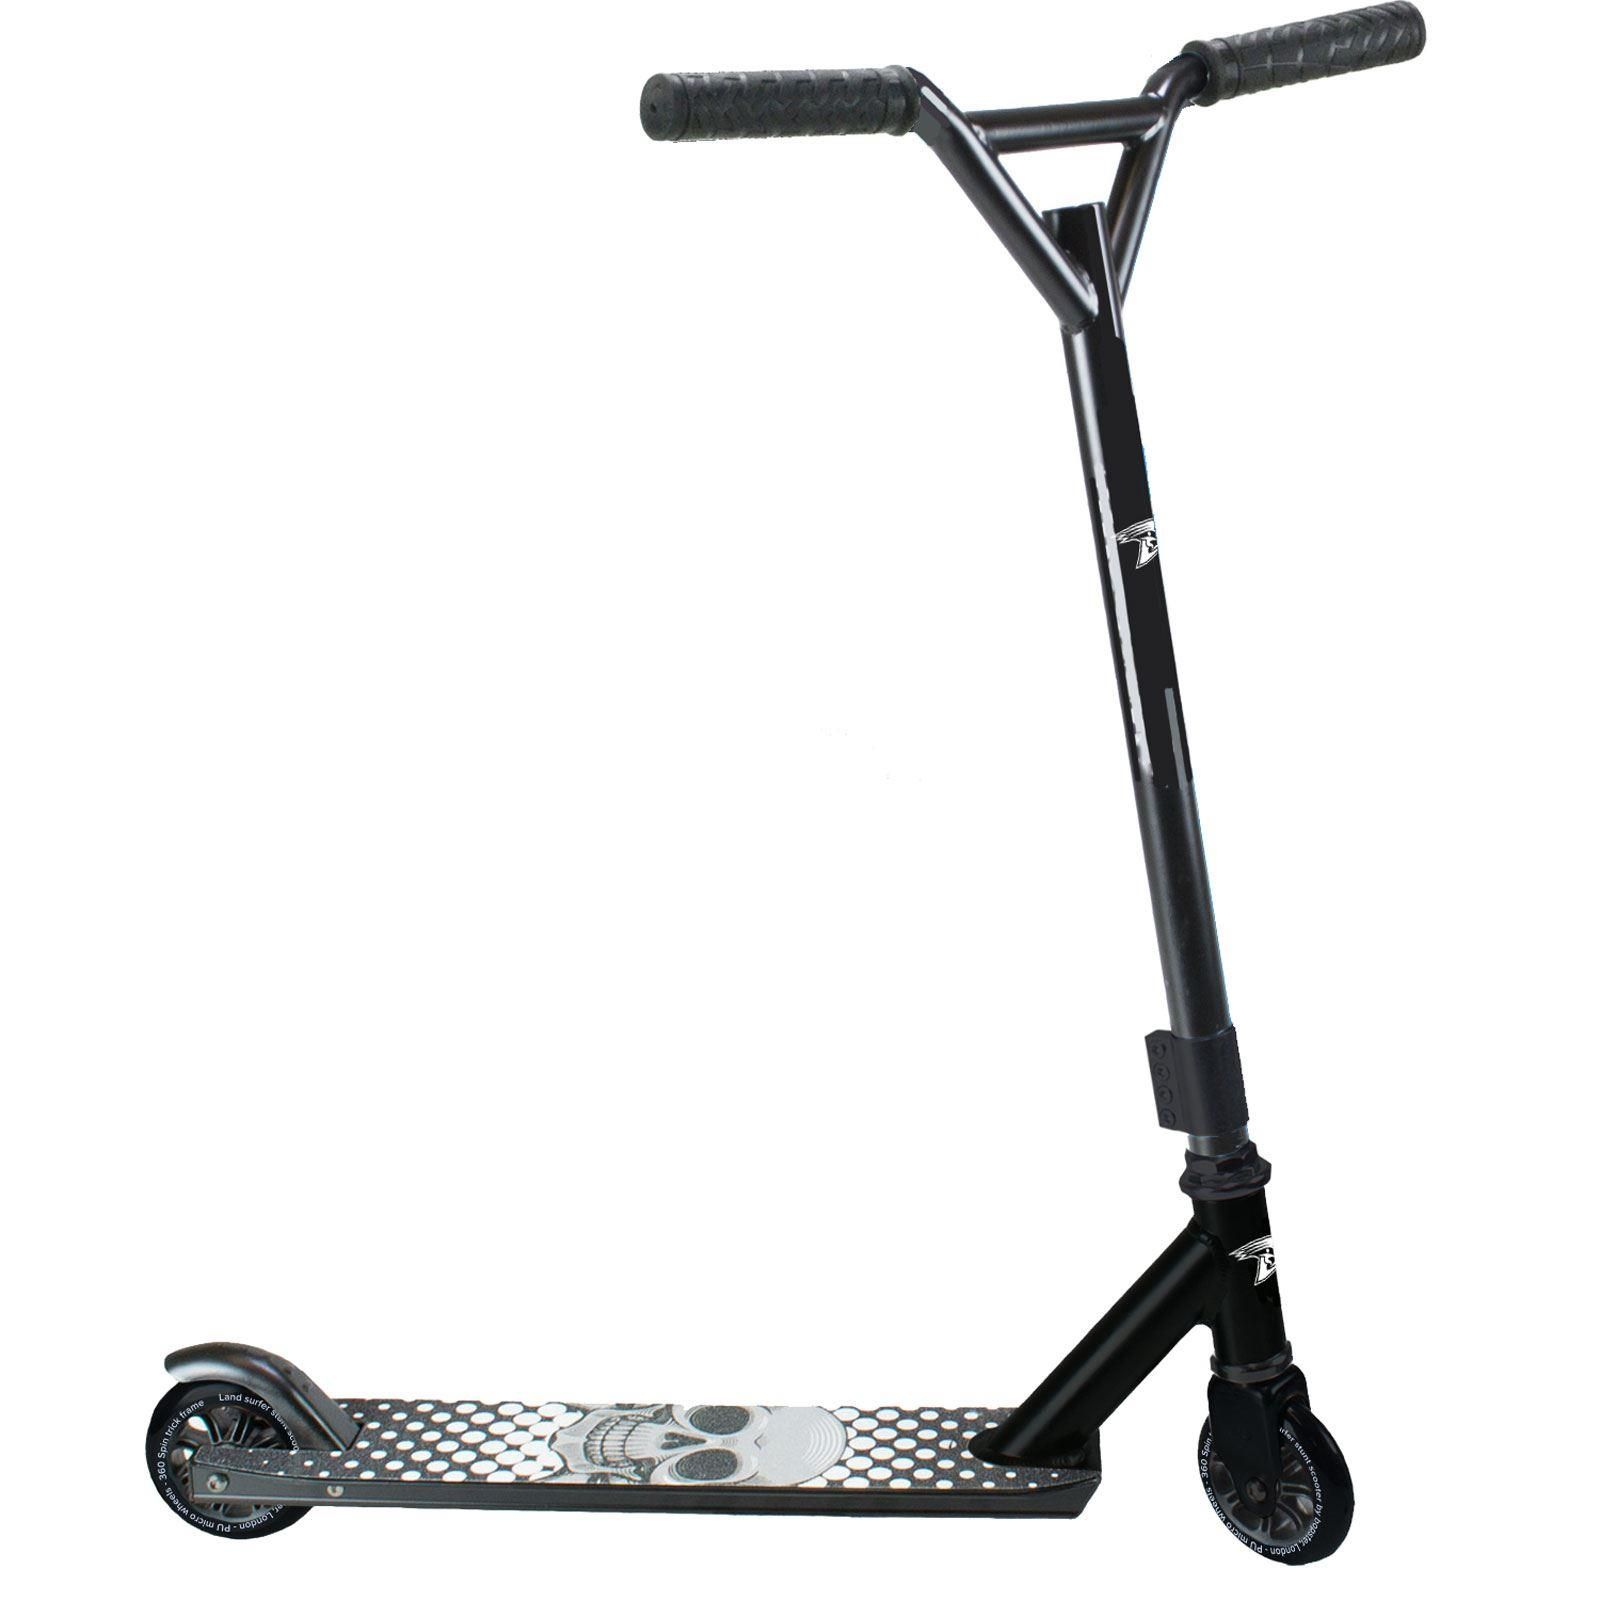 Land Surfer® Stunt Scooter - Black Skull